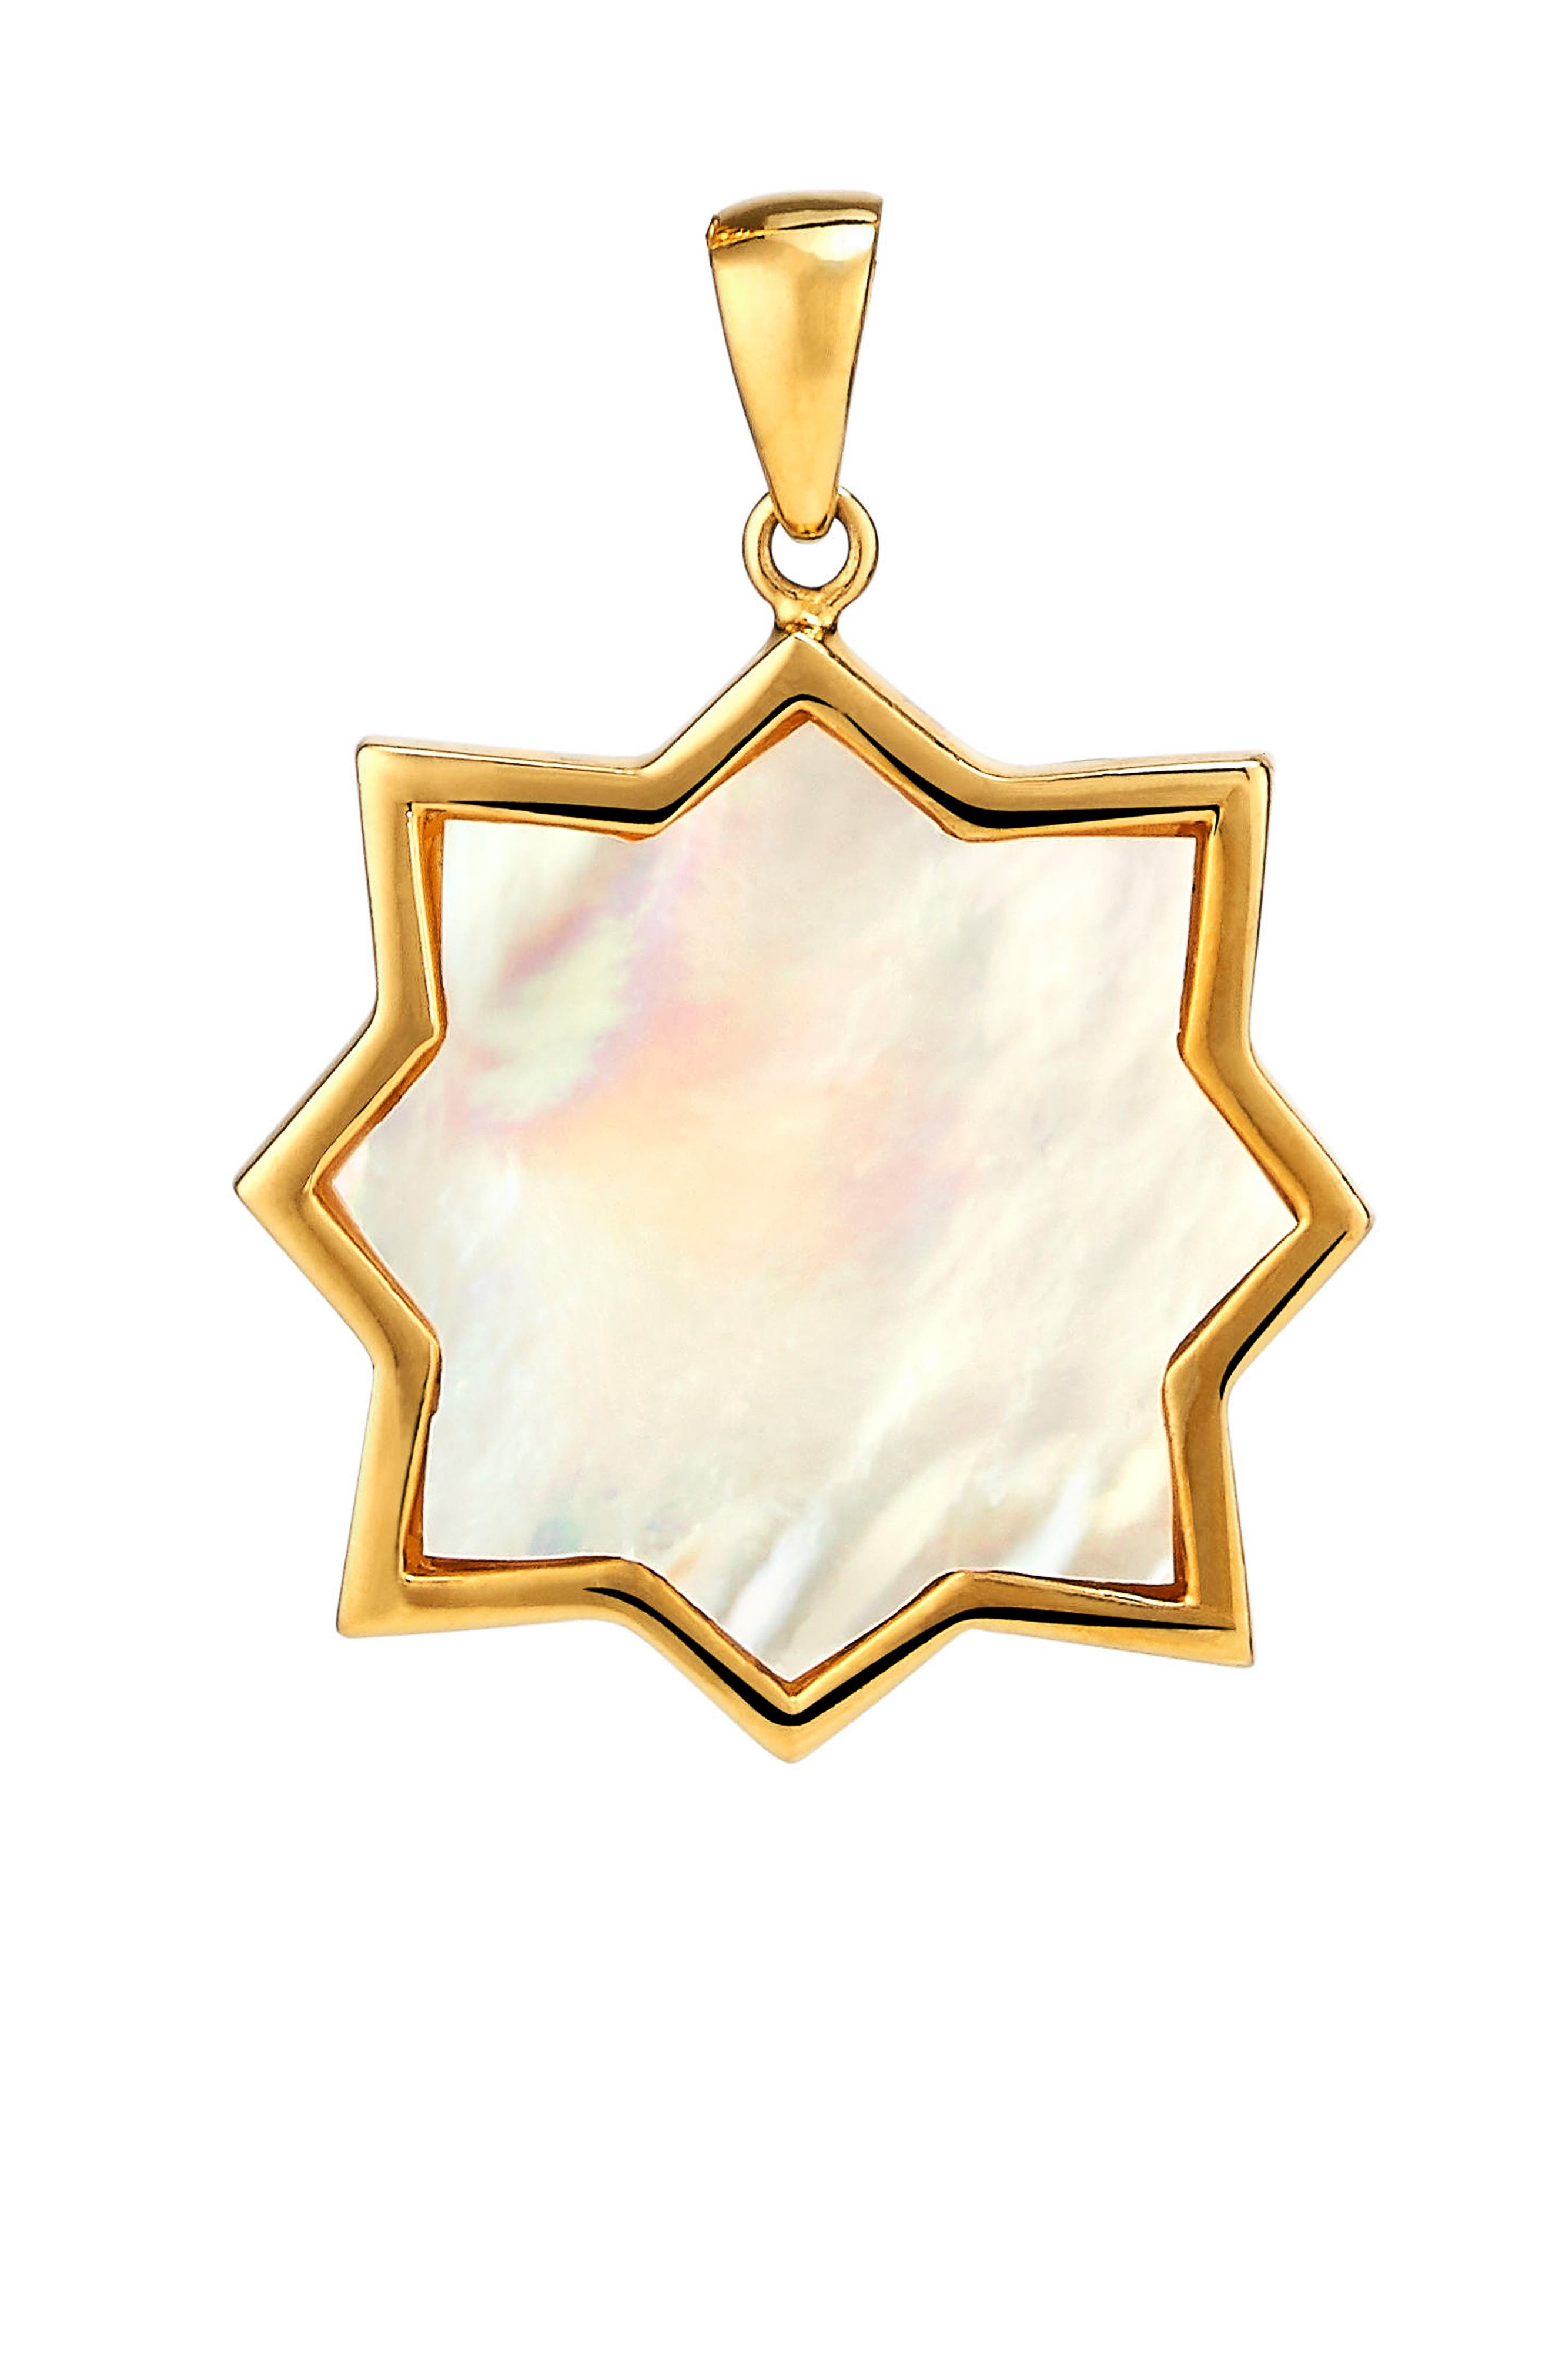 Kismet Large Mother-of Pearl Charm,                         Main,                         color, Gold - Mother Of Pearl